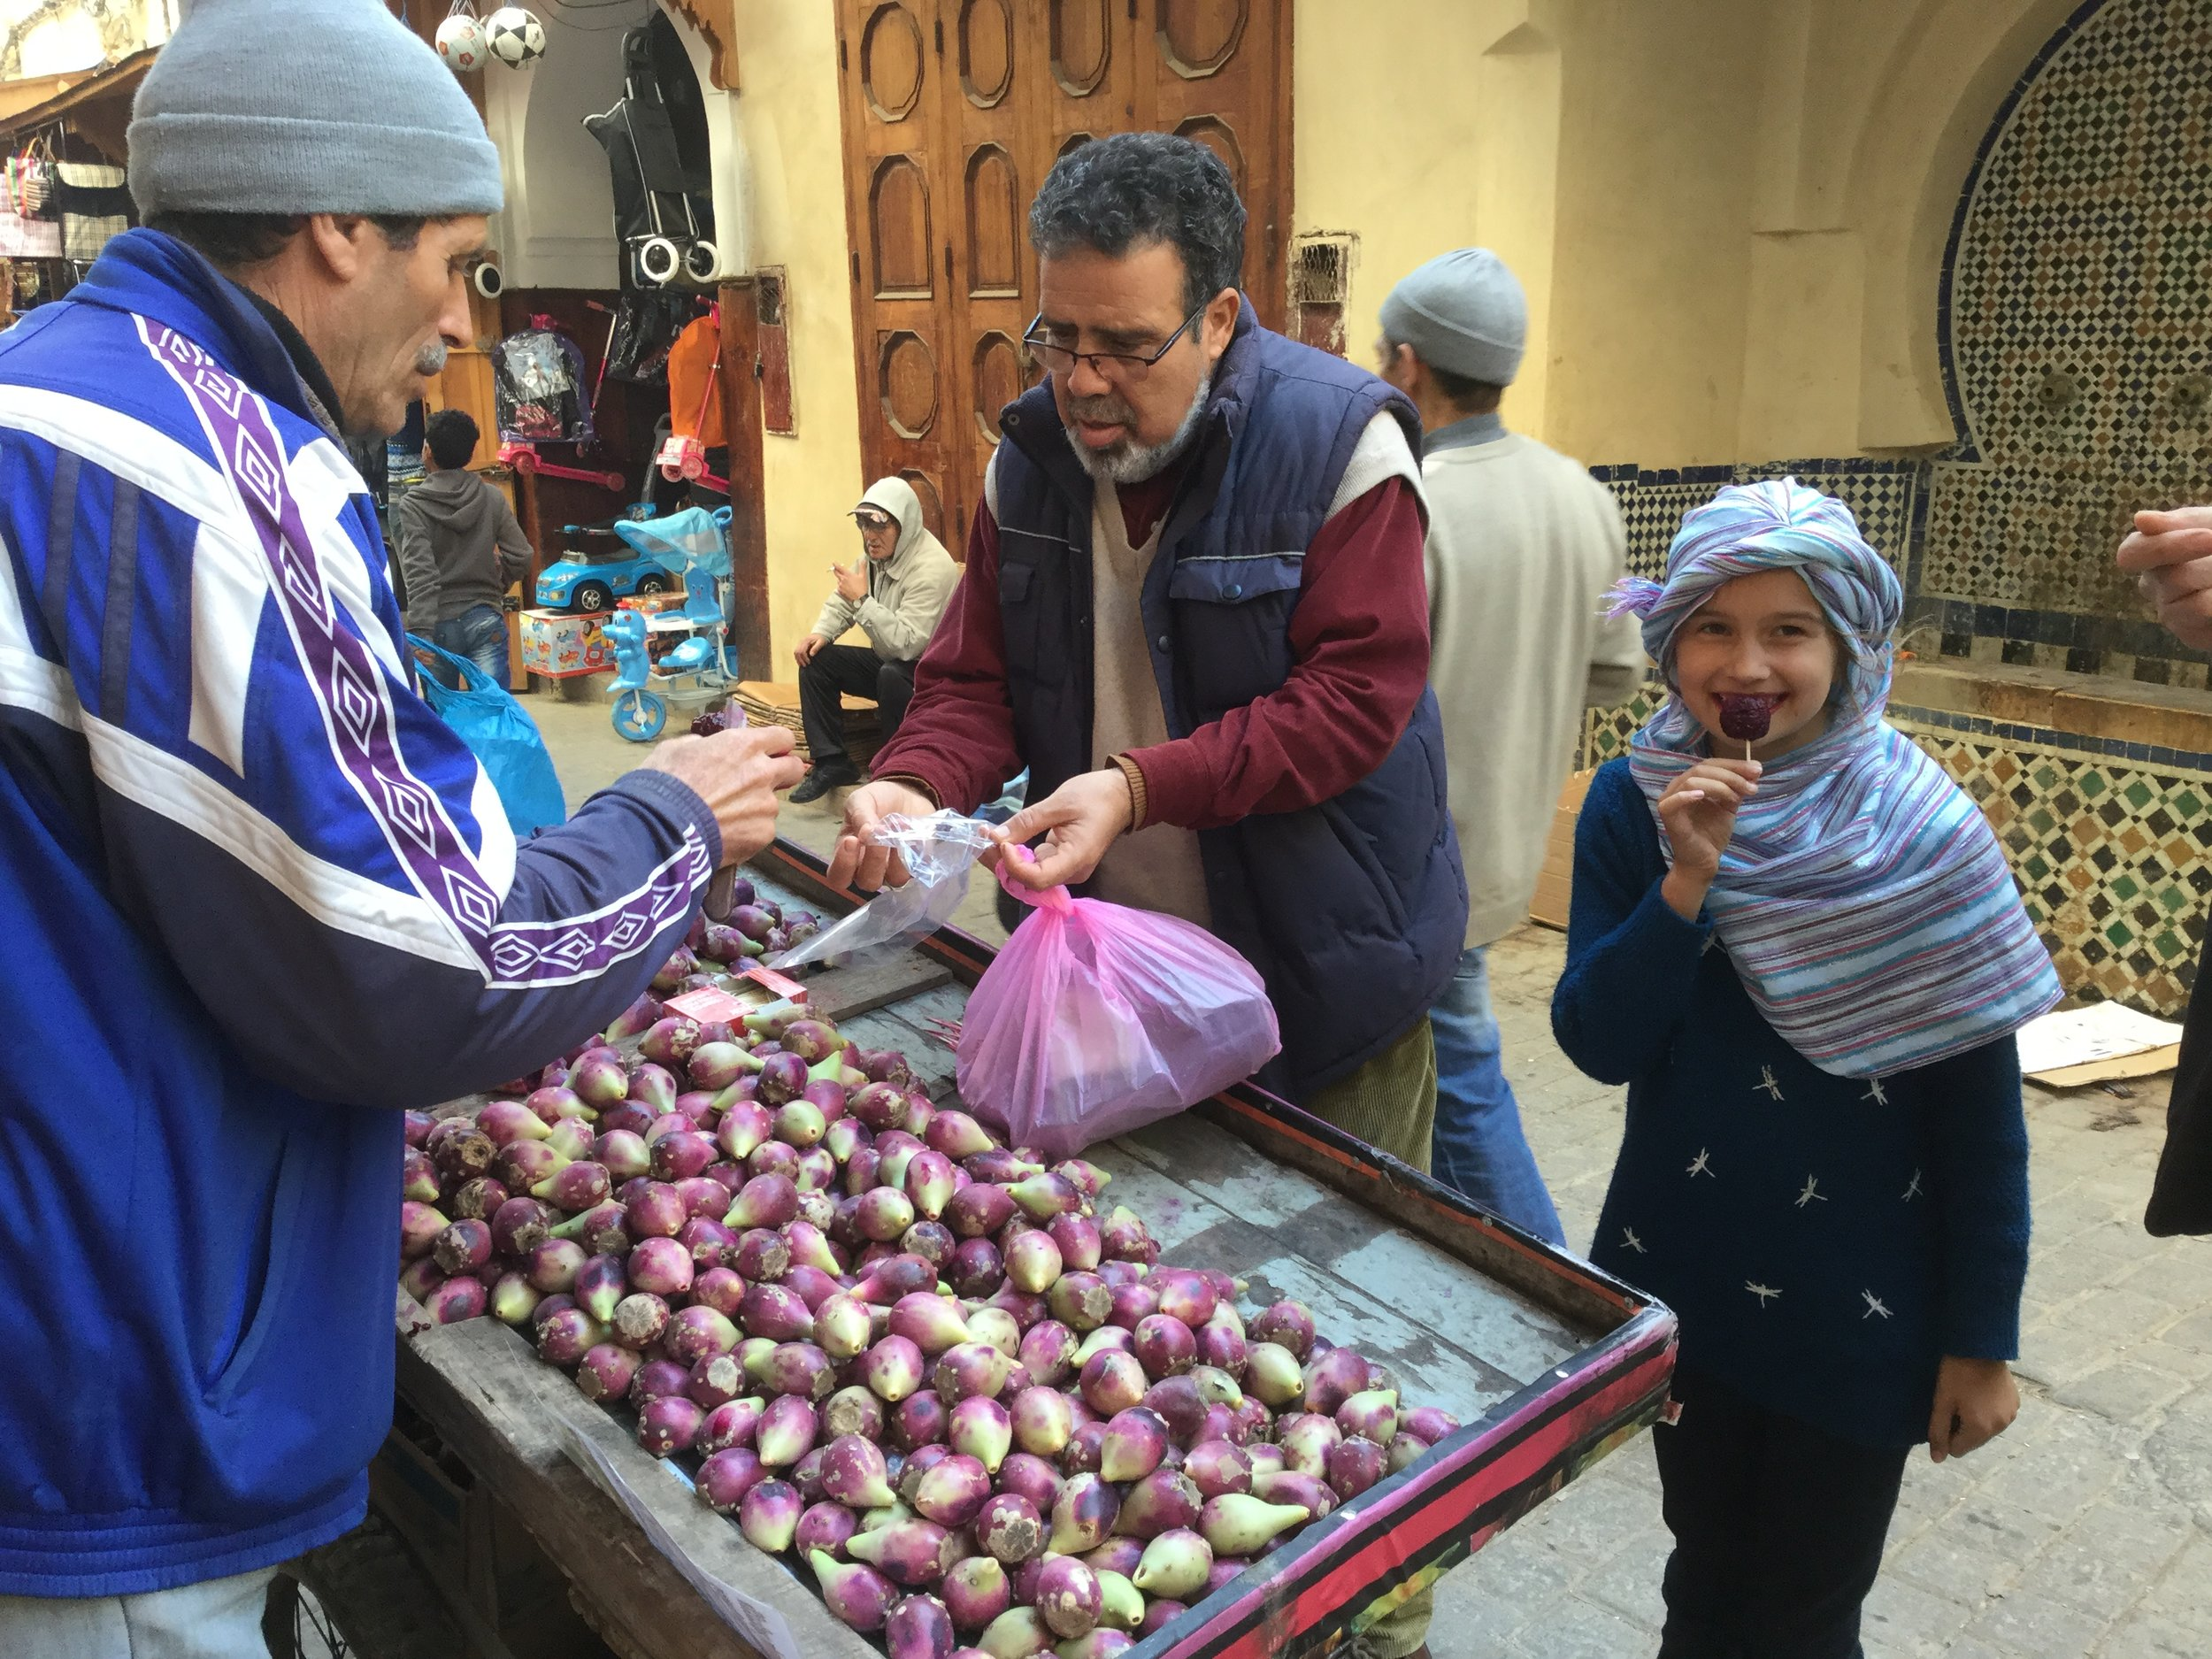 Buying prickly pears with our fantastic guide Jalil. (That's right - don't even think of touring the medina on your own. You will just get lost and miss many hidden gems).